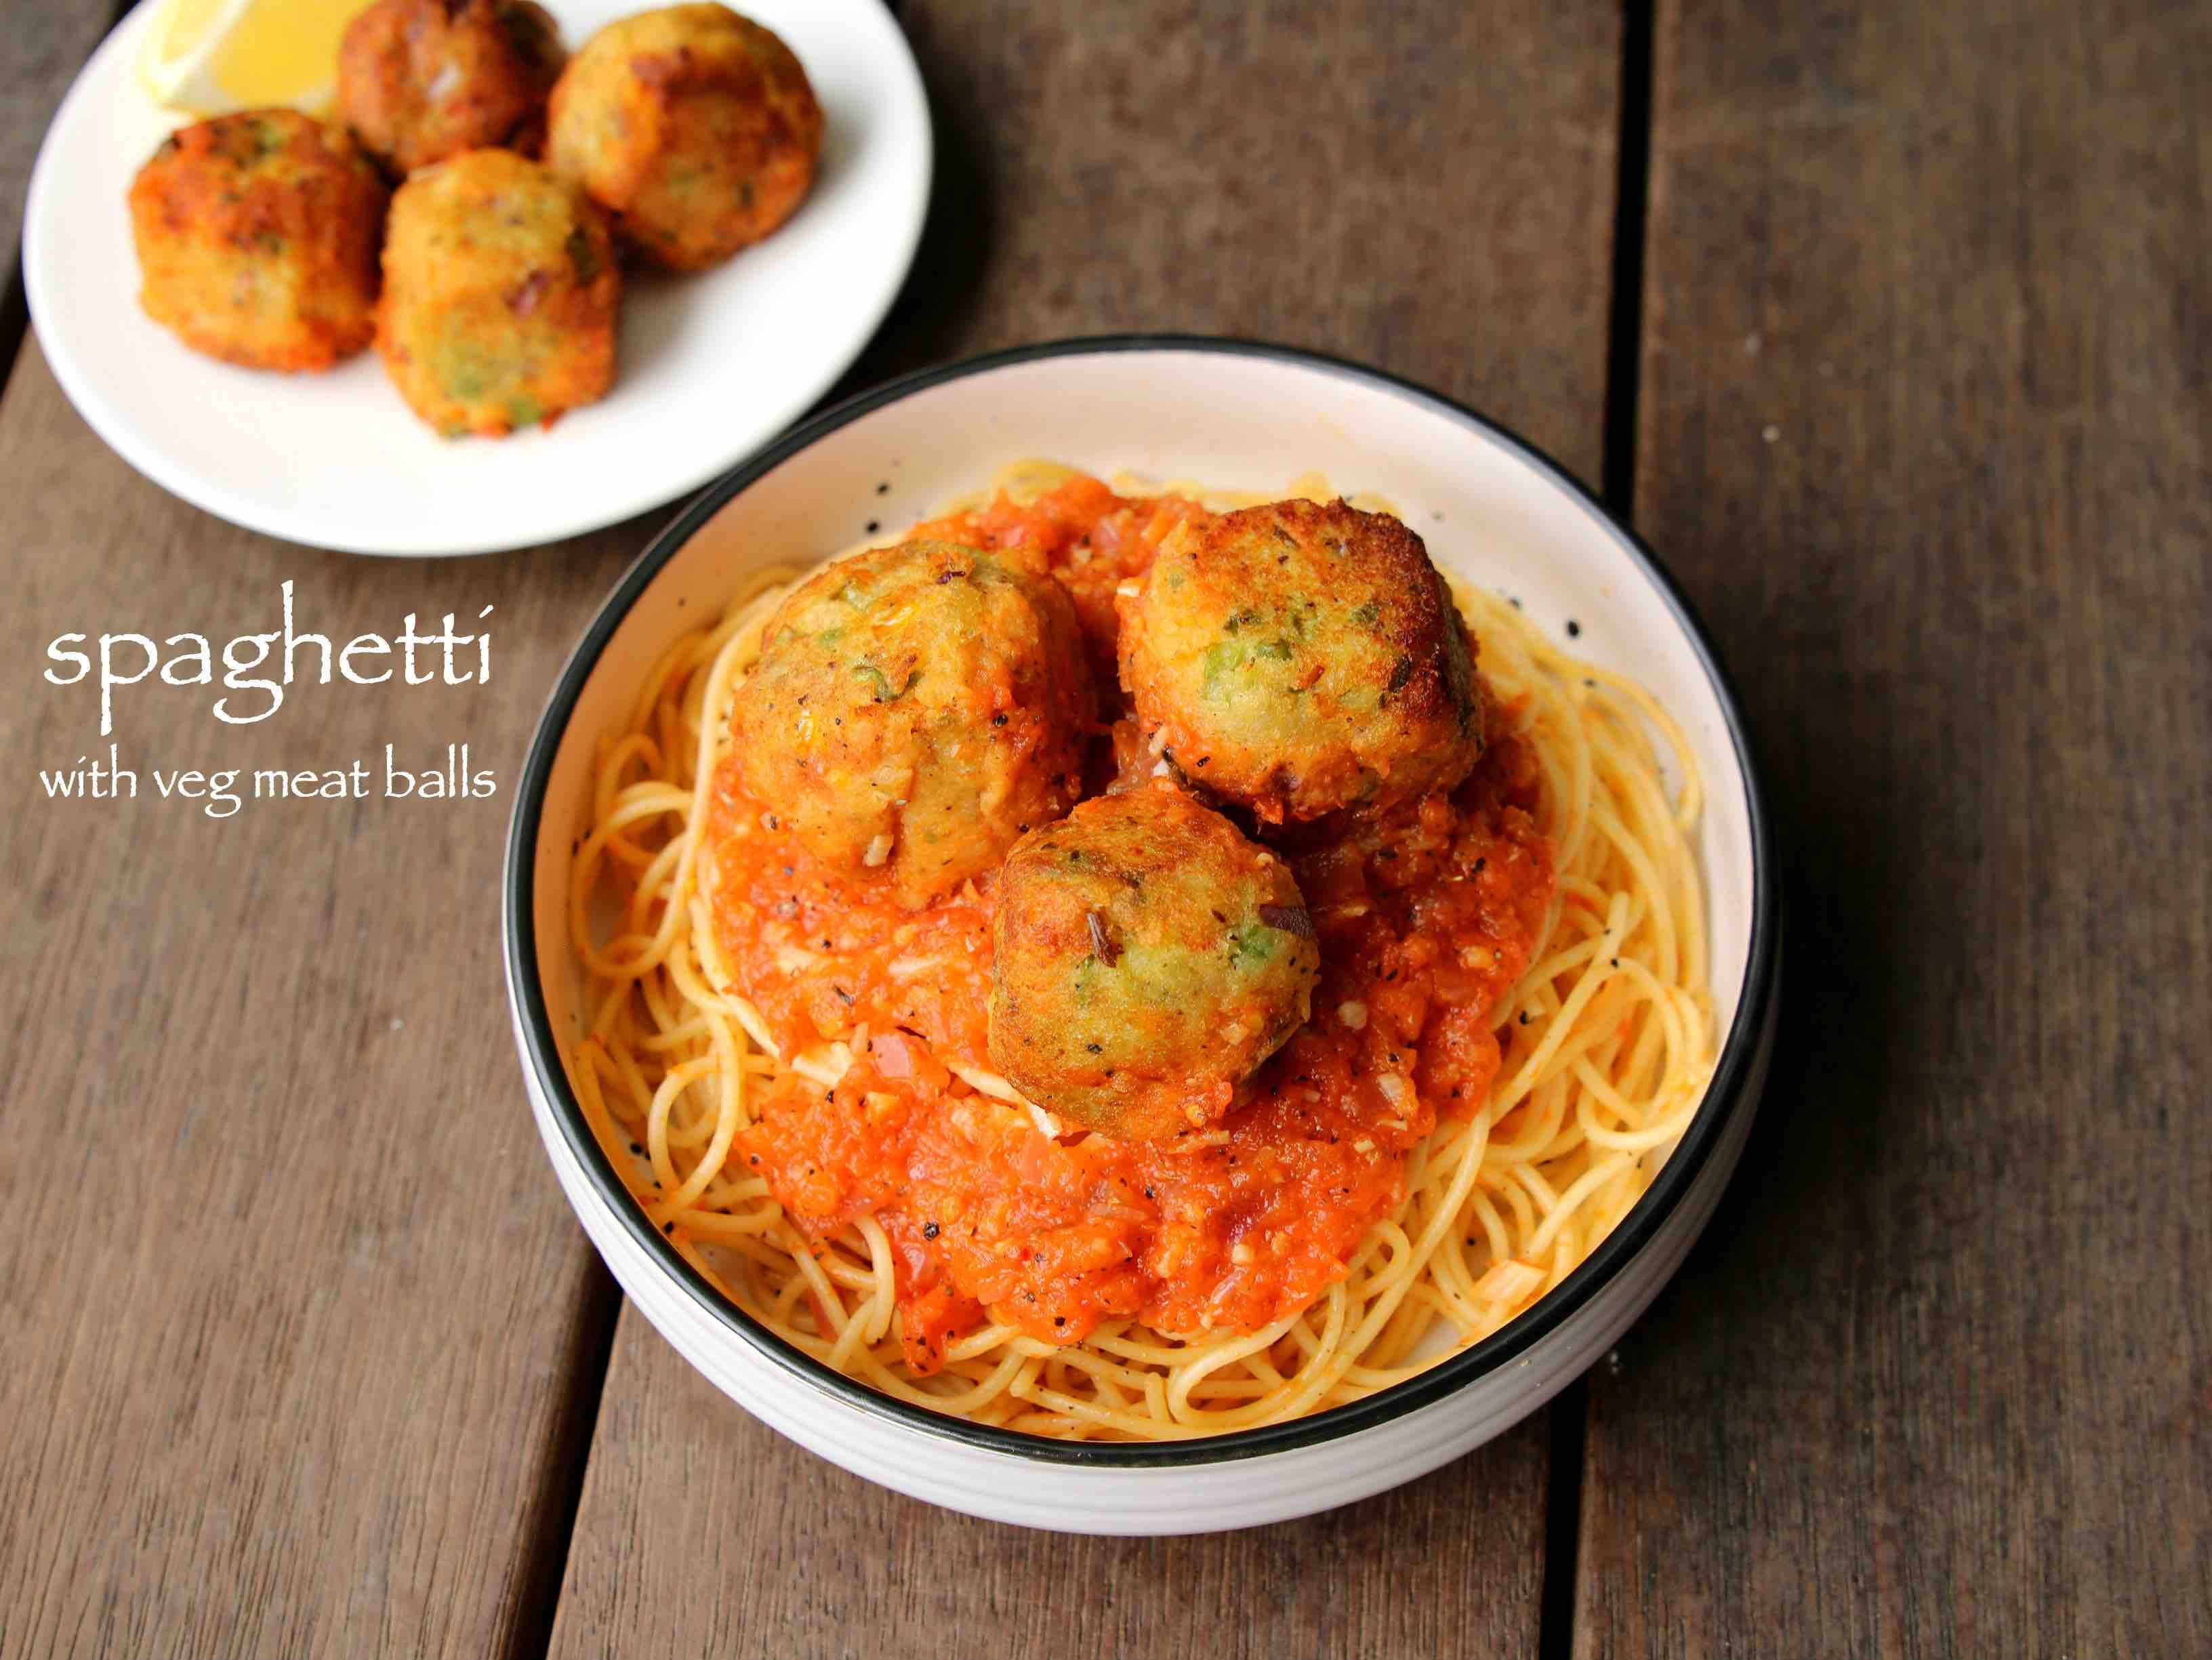 Spaghetti recipe vegetarian spaghetti spagetti recipe with veg spaghetti recipe vegetarian spaghetti spagetti recipe with veg meat balls with step by step photo and video recipe typically a meat based italian forumfinder